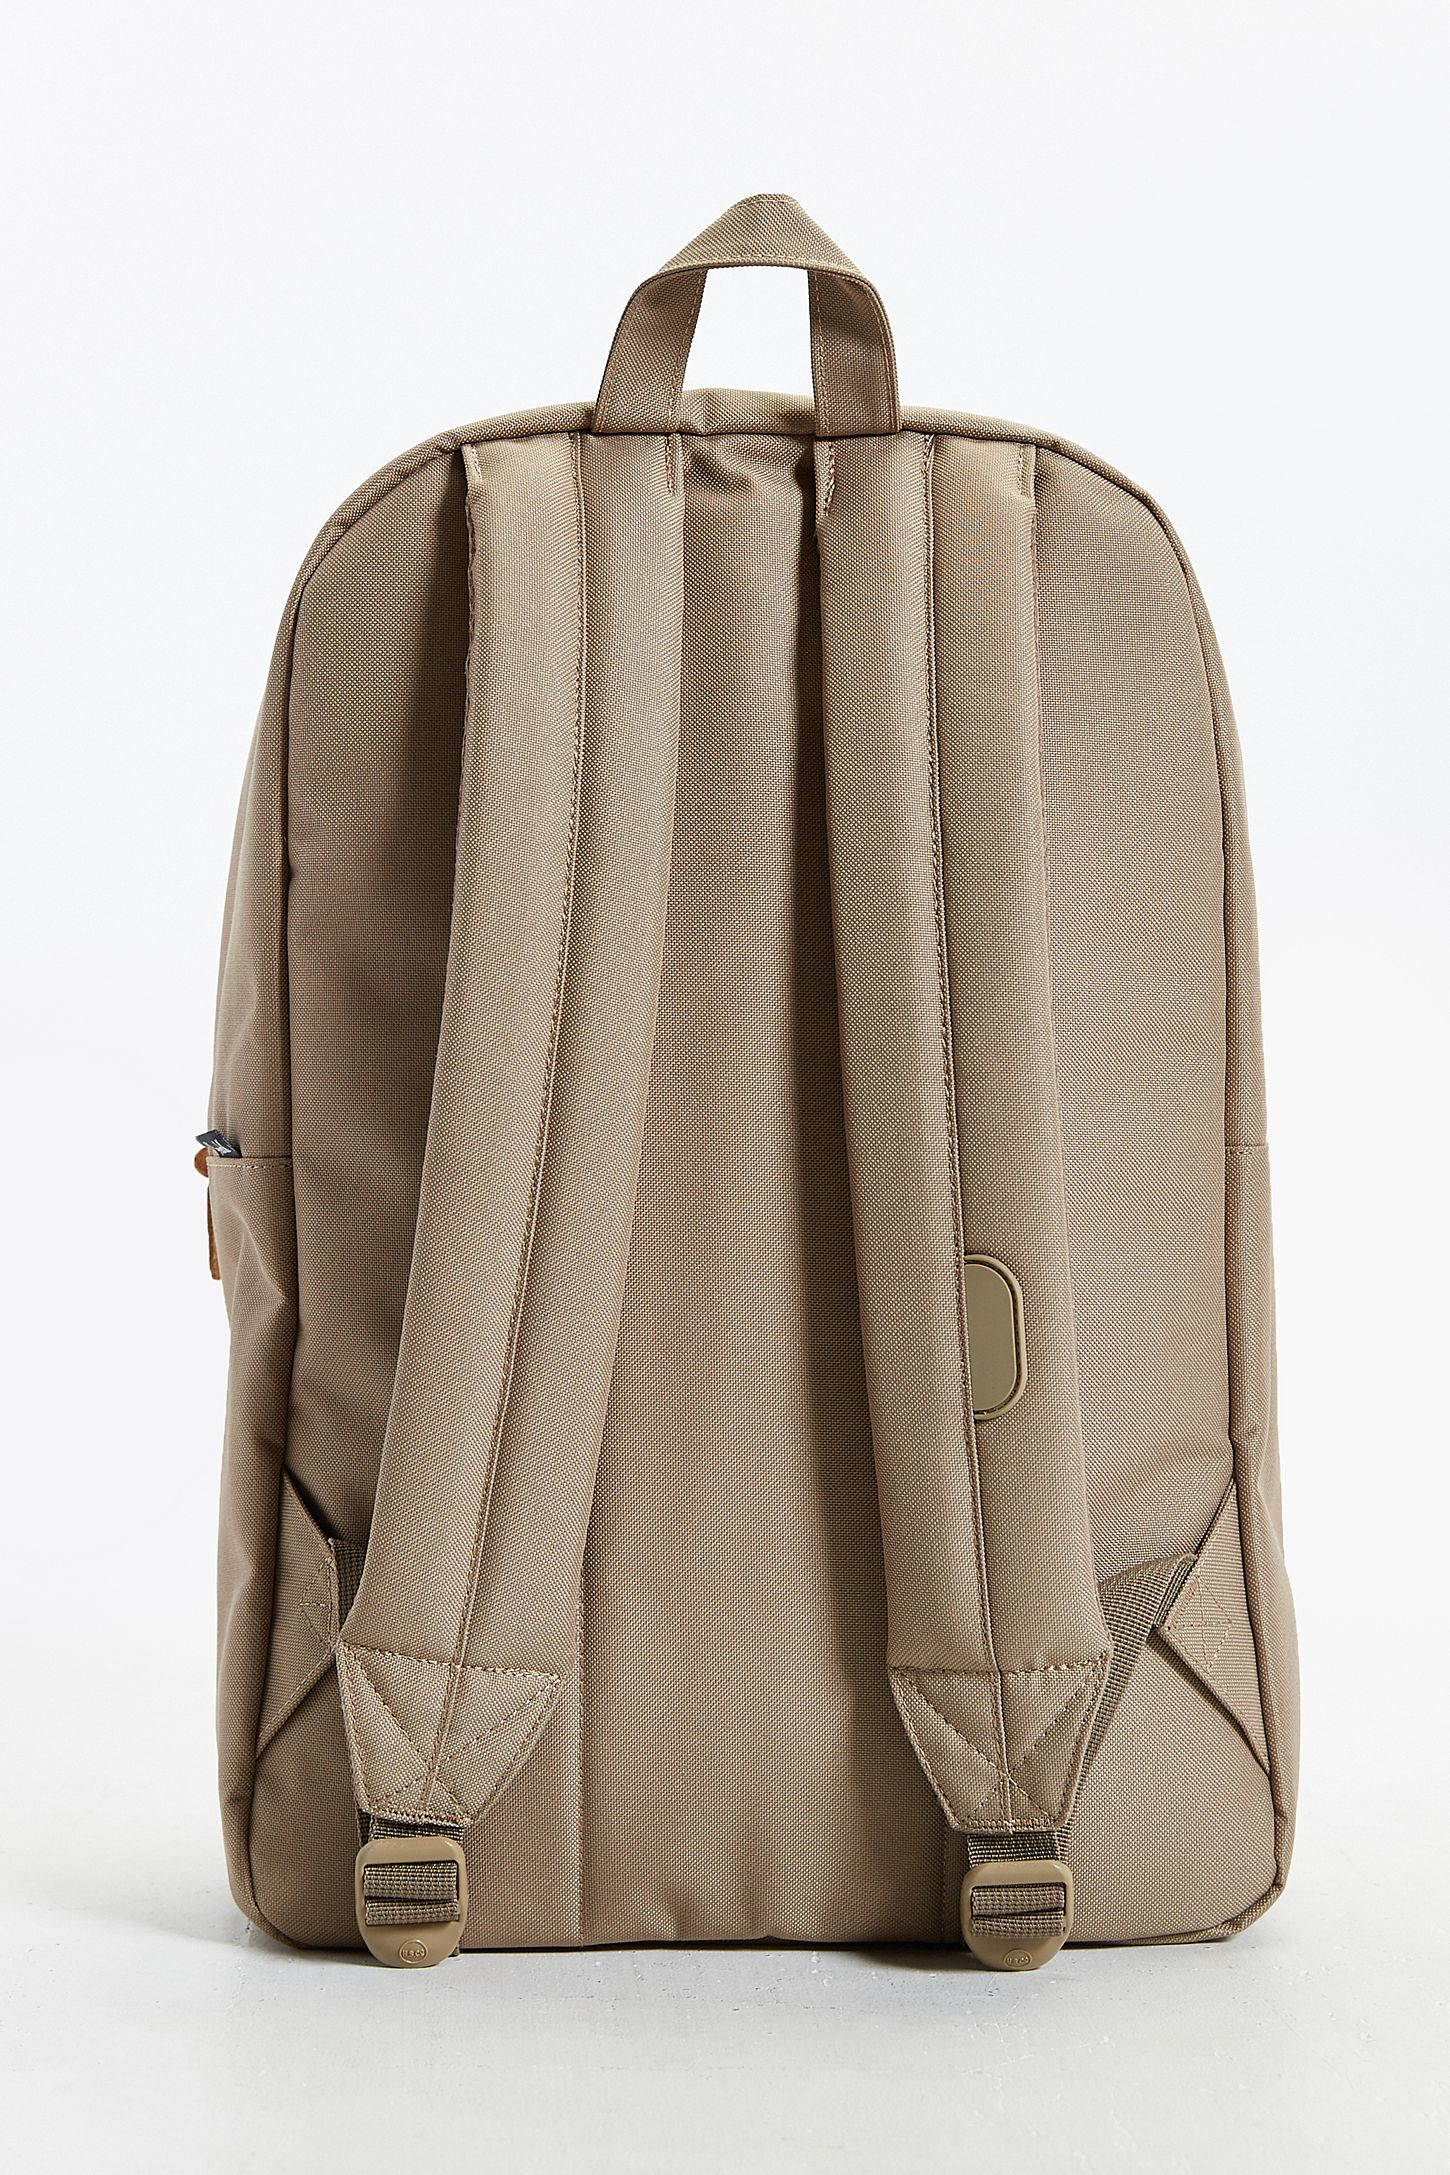 5c95e635a9a Slide View  12  Herschel Supply Co. Heritage Backpack